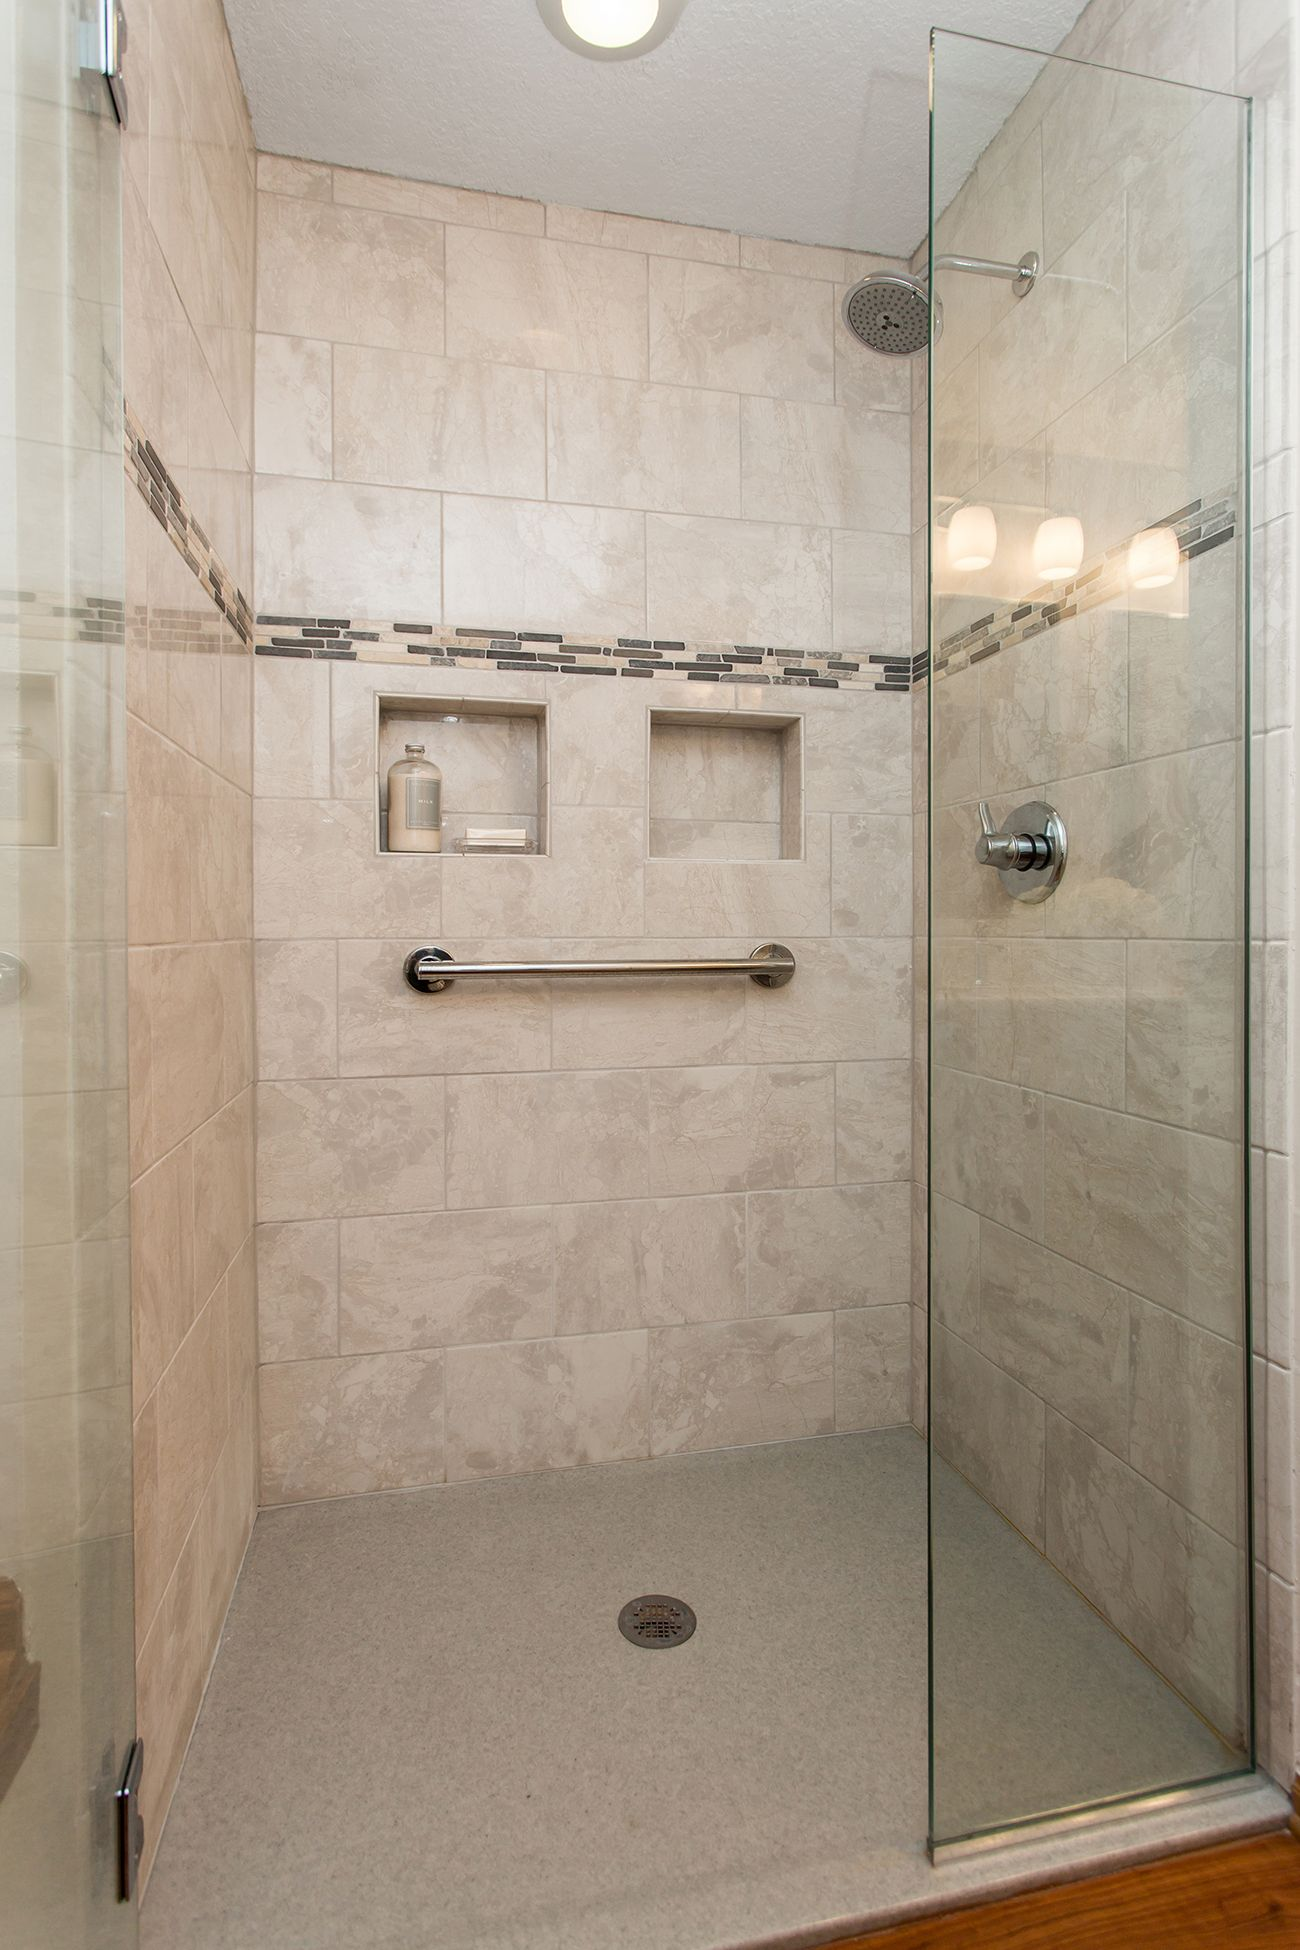 This remodeled shower blends style and accessibility with a zero